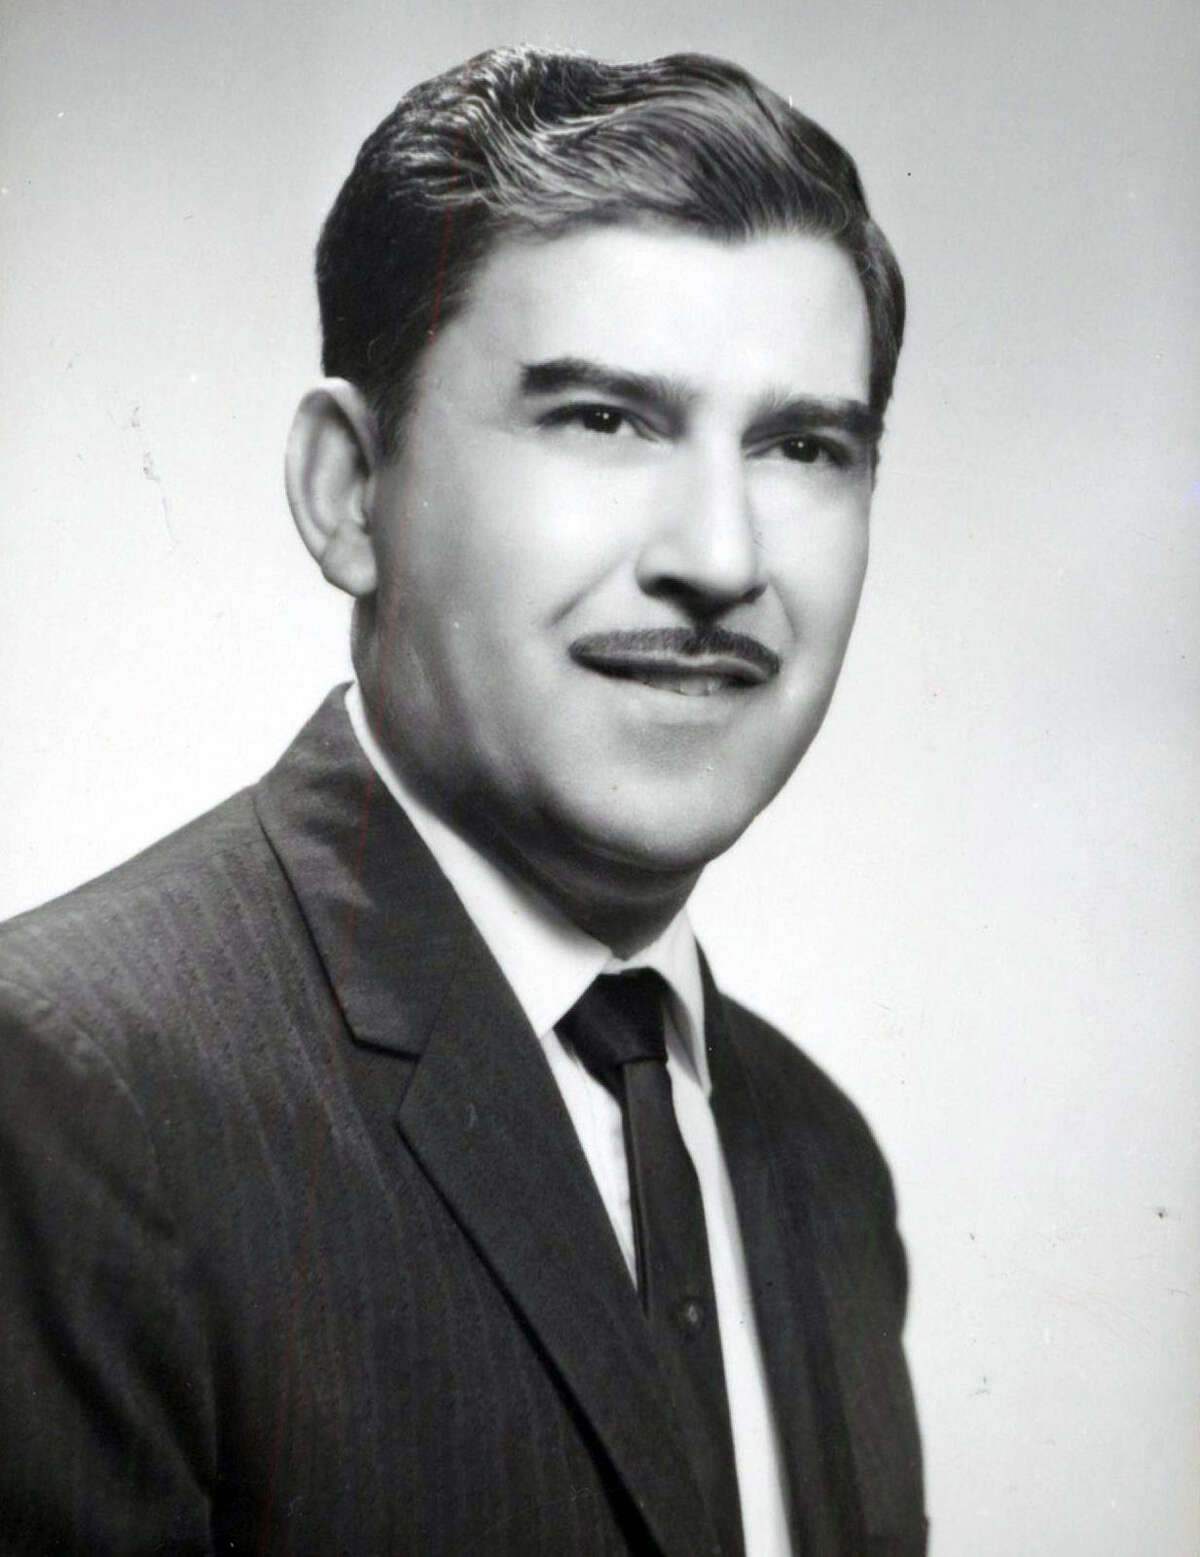 Felix B. Trevino was elected to the San Antonio City Council in 1965 and served until 1972.